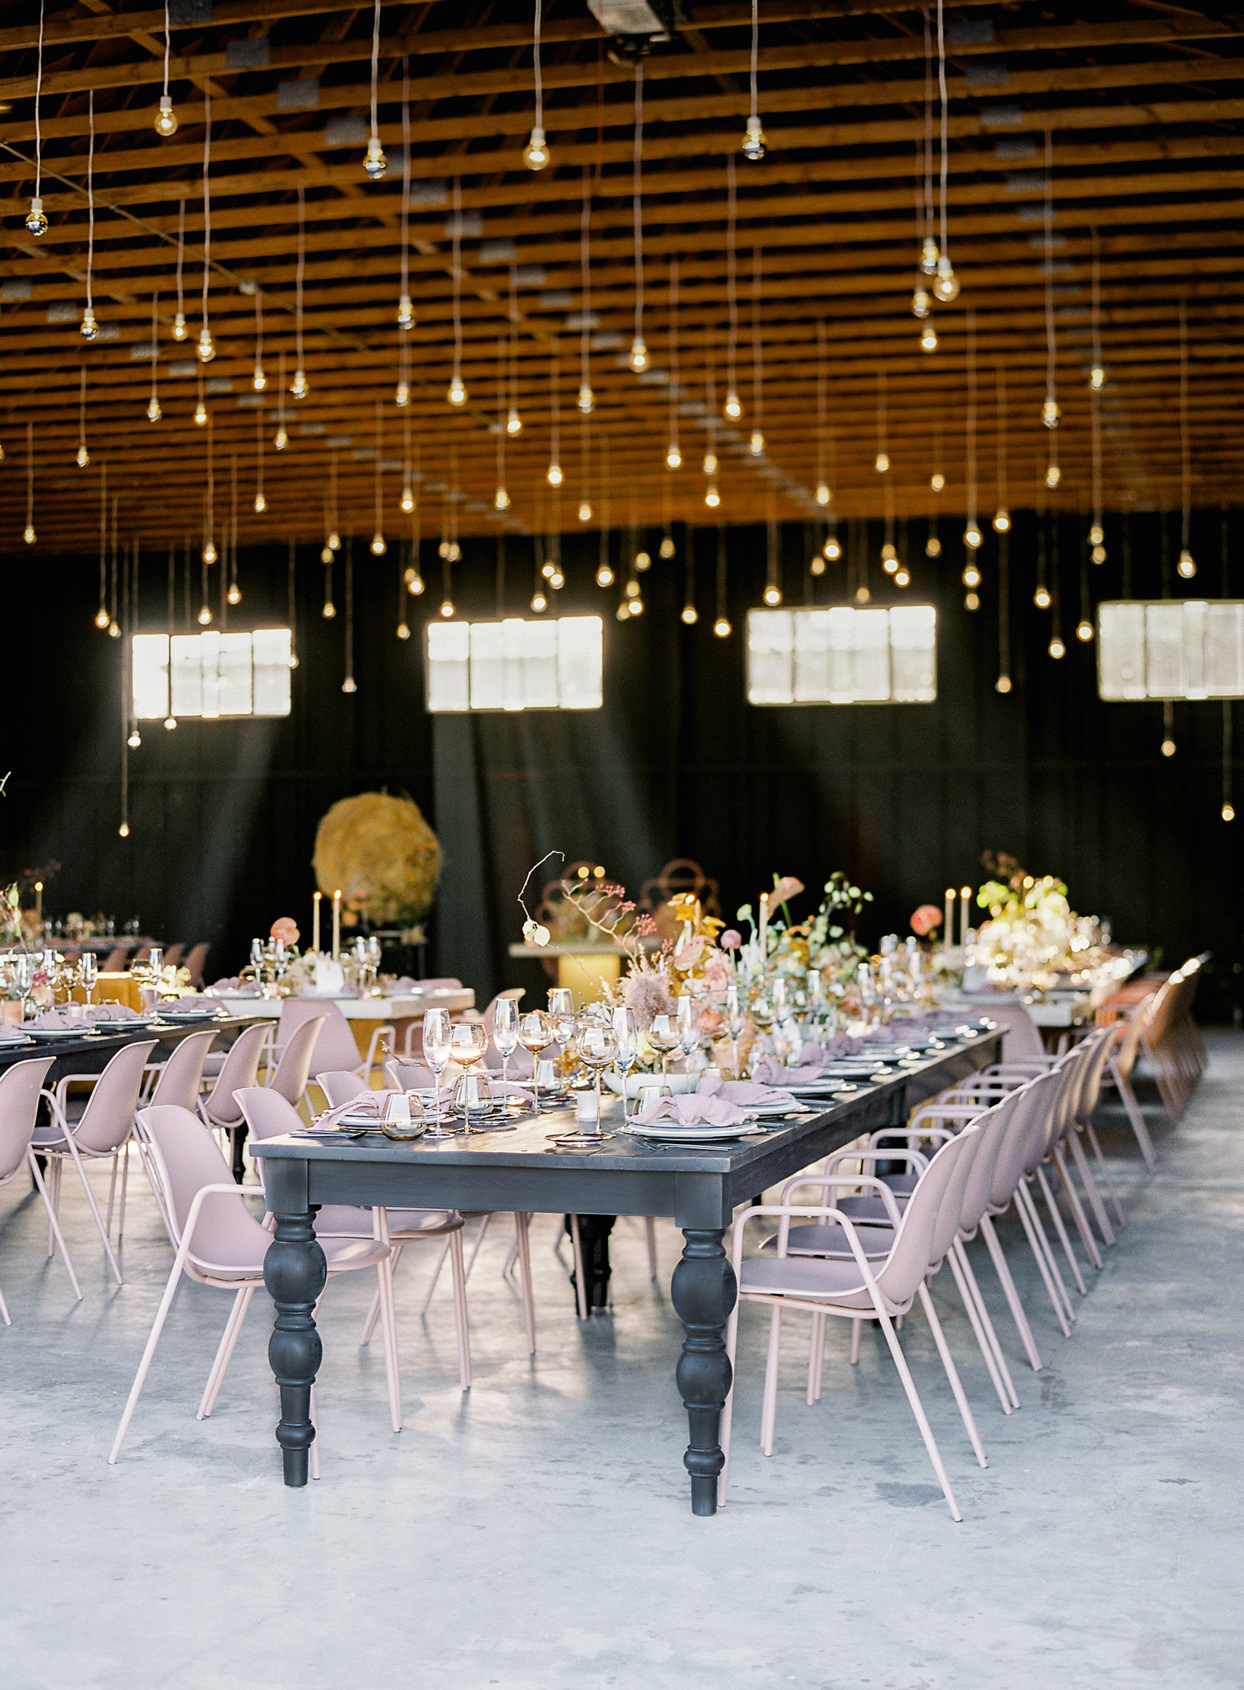 reception seating in barn with hanging bulbs installation